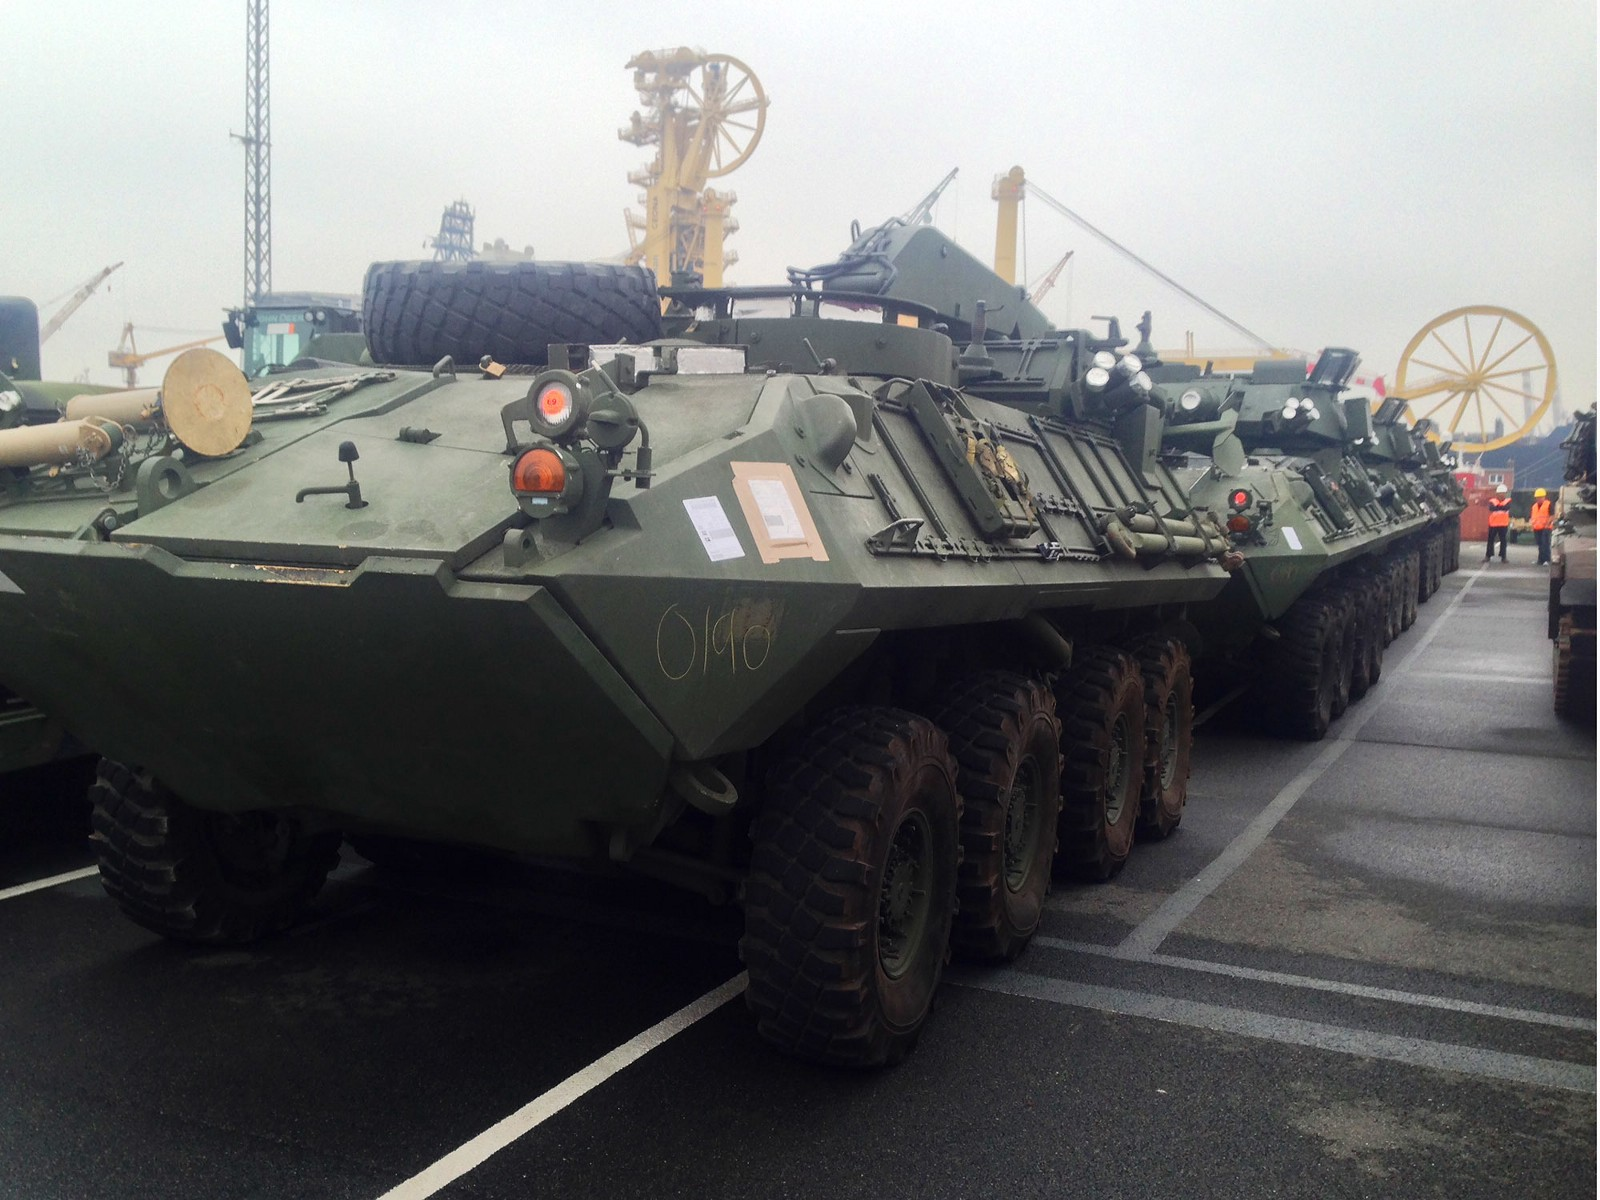 Above-U.S. Marine Corps LAV-R and LAV-25 vehicles on their way to Bulgaria. At top-an M-1 tank belonging to the new task force. Marine Corps photos